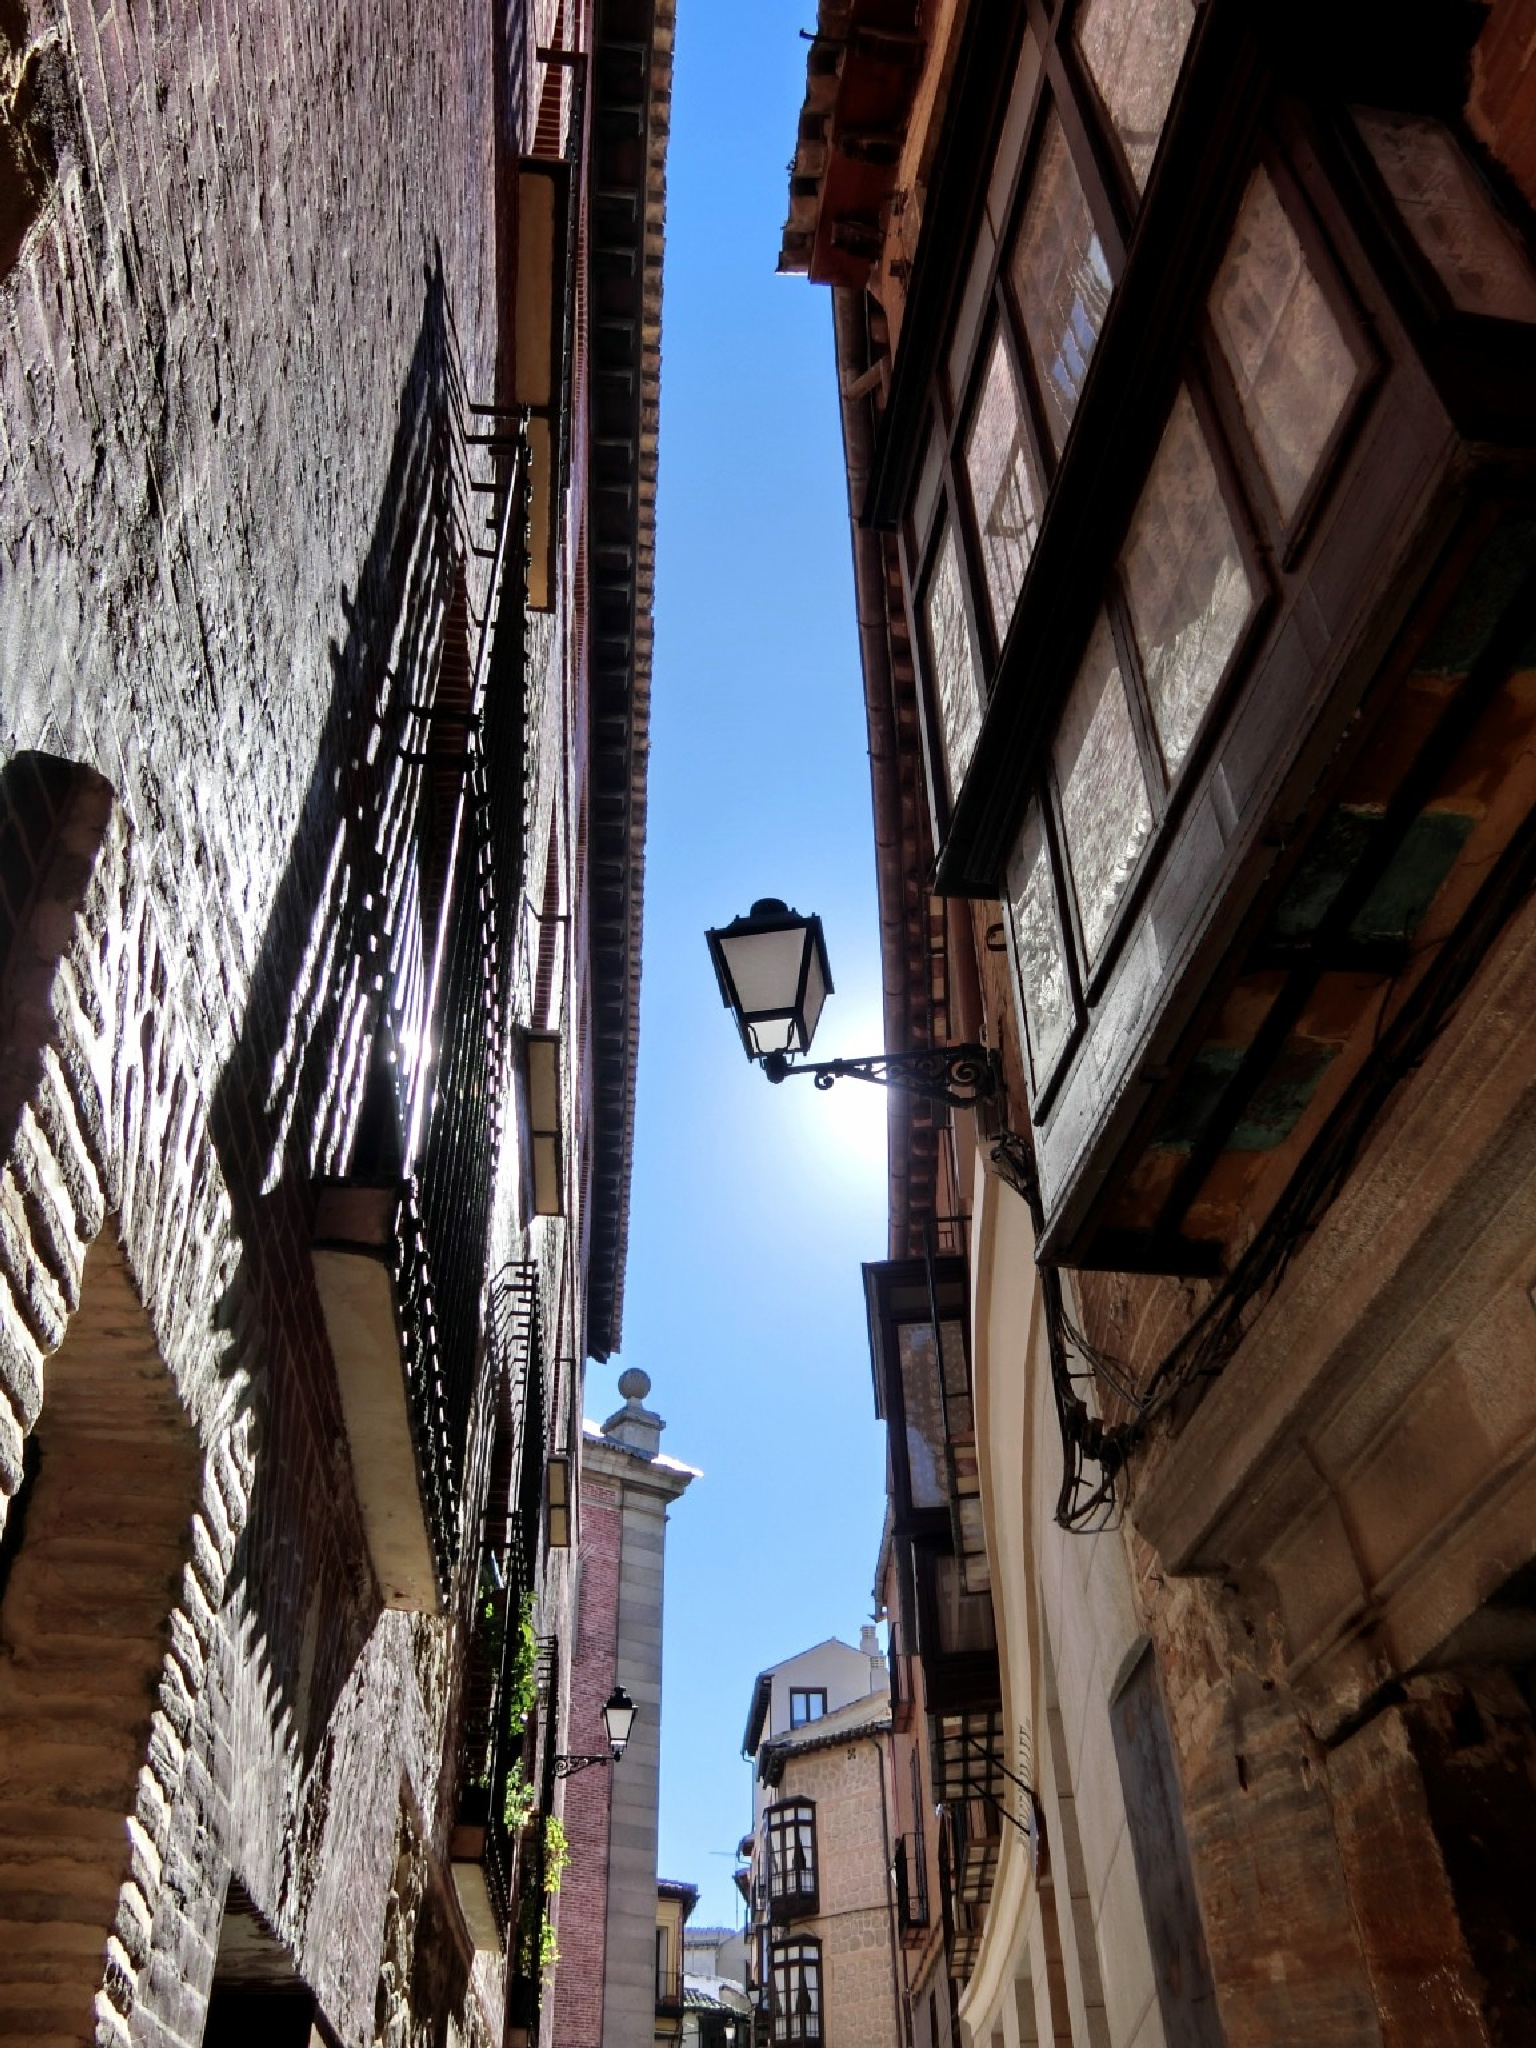 Inside the old town of Toledo by pop88123